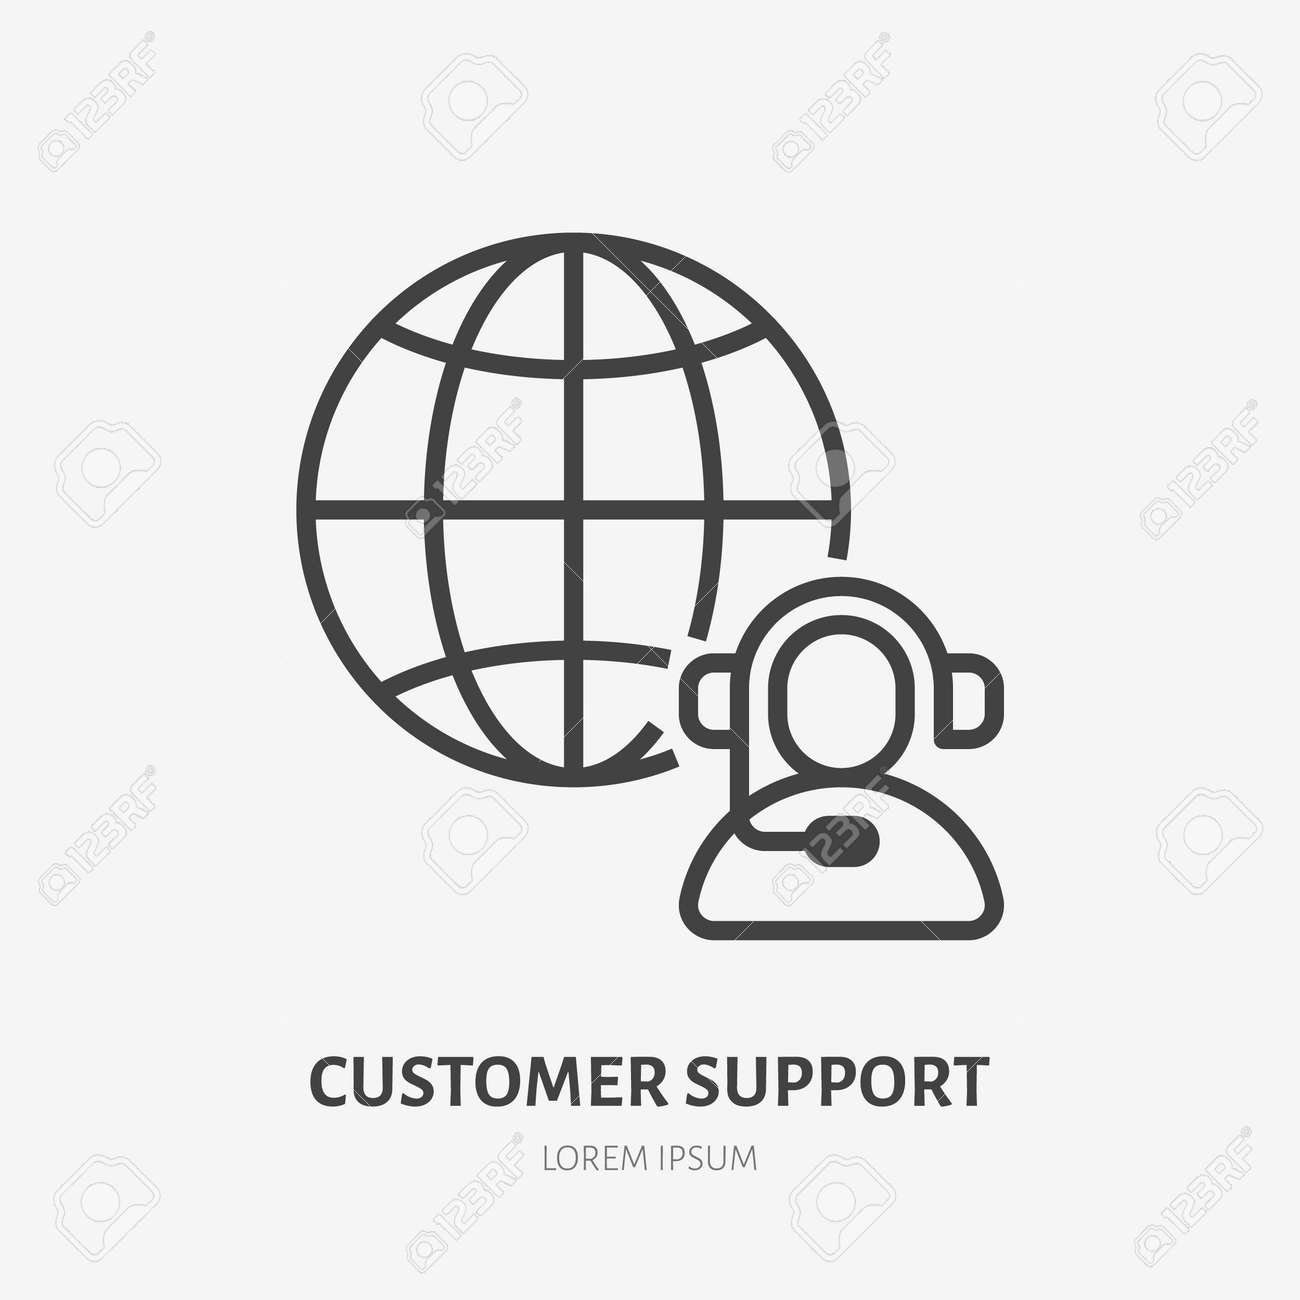 Customer customer line icon, vector pictogram of client support, online assistant. Operator in headset with globe stroke sign for call center. - 158800971